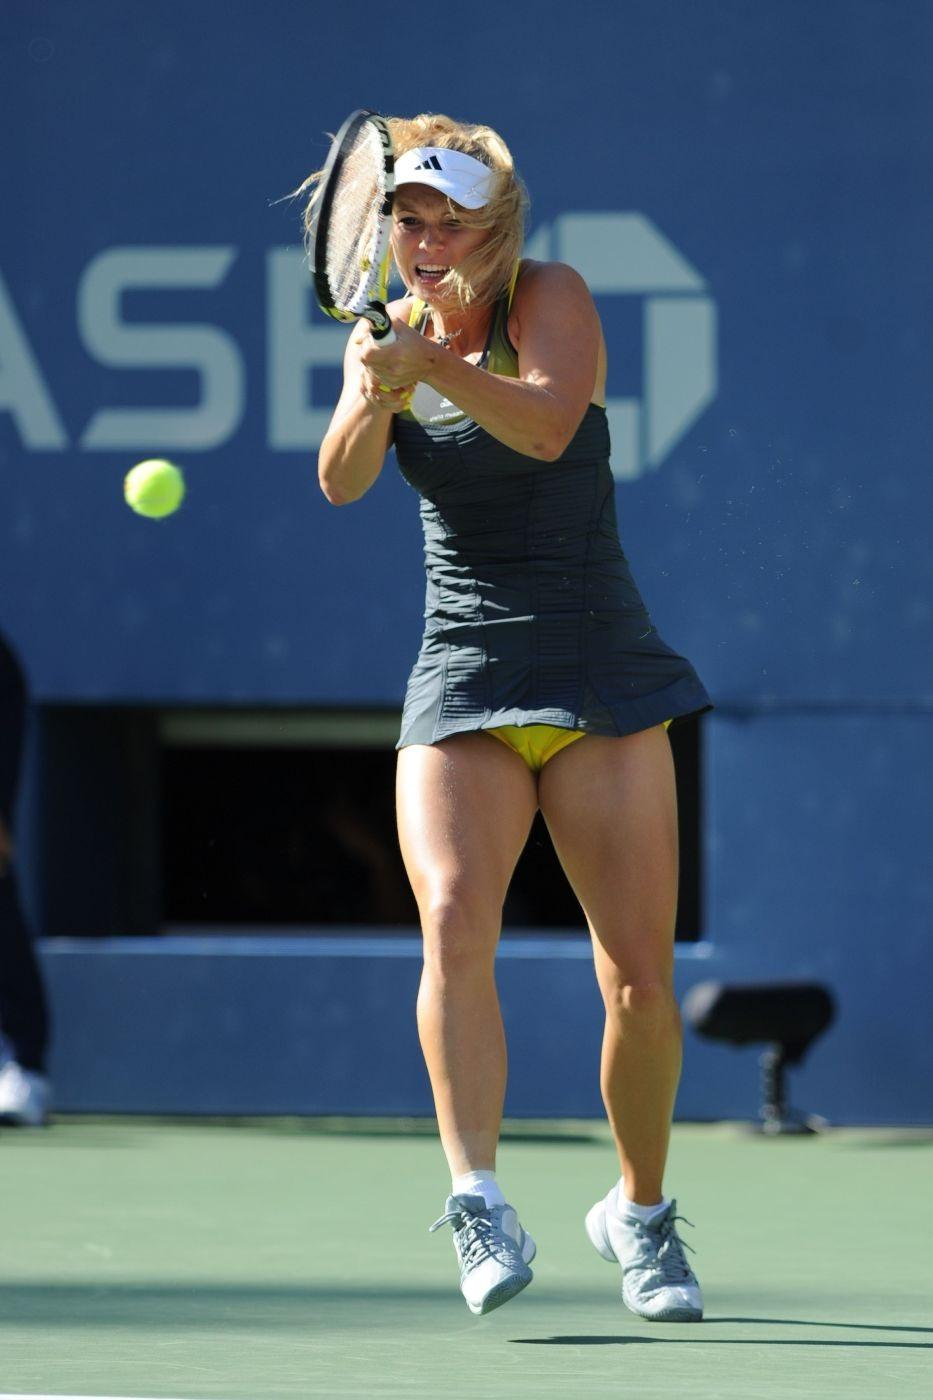 Carolina Wozniacki Cameltoe Same Yellow Black Outfit Semifinals Time Caroline Wozniacki Cameltoe Us Open Semi Finals Hot